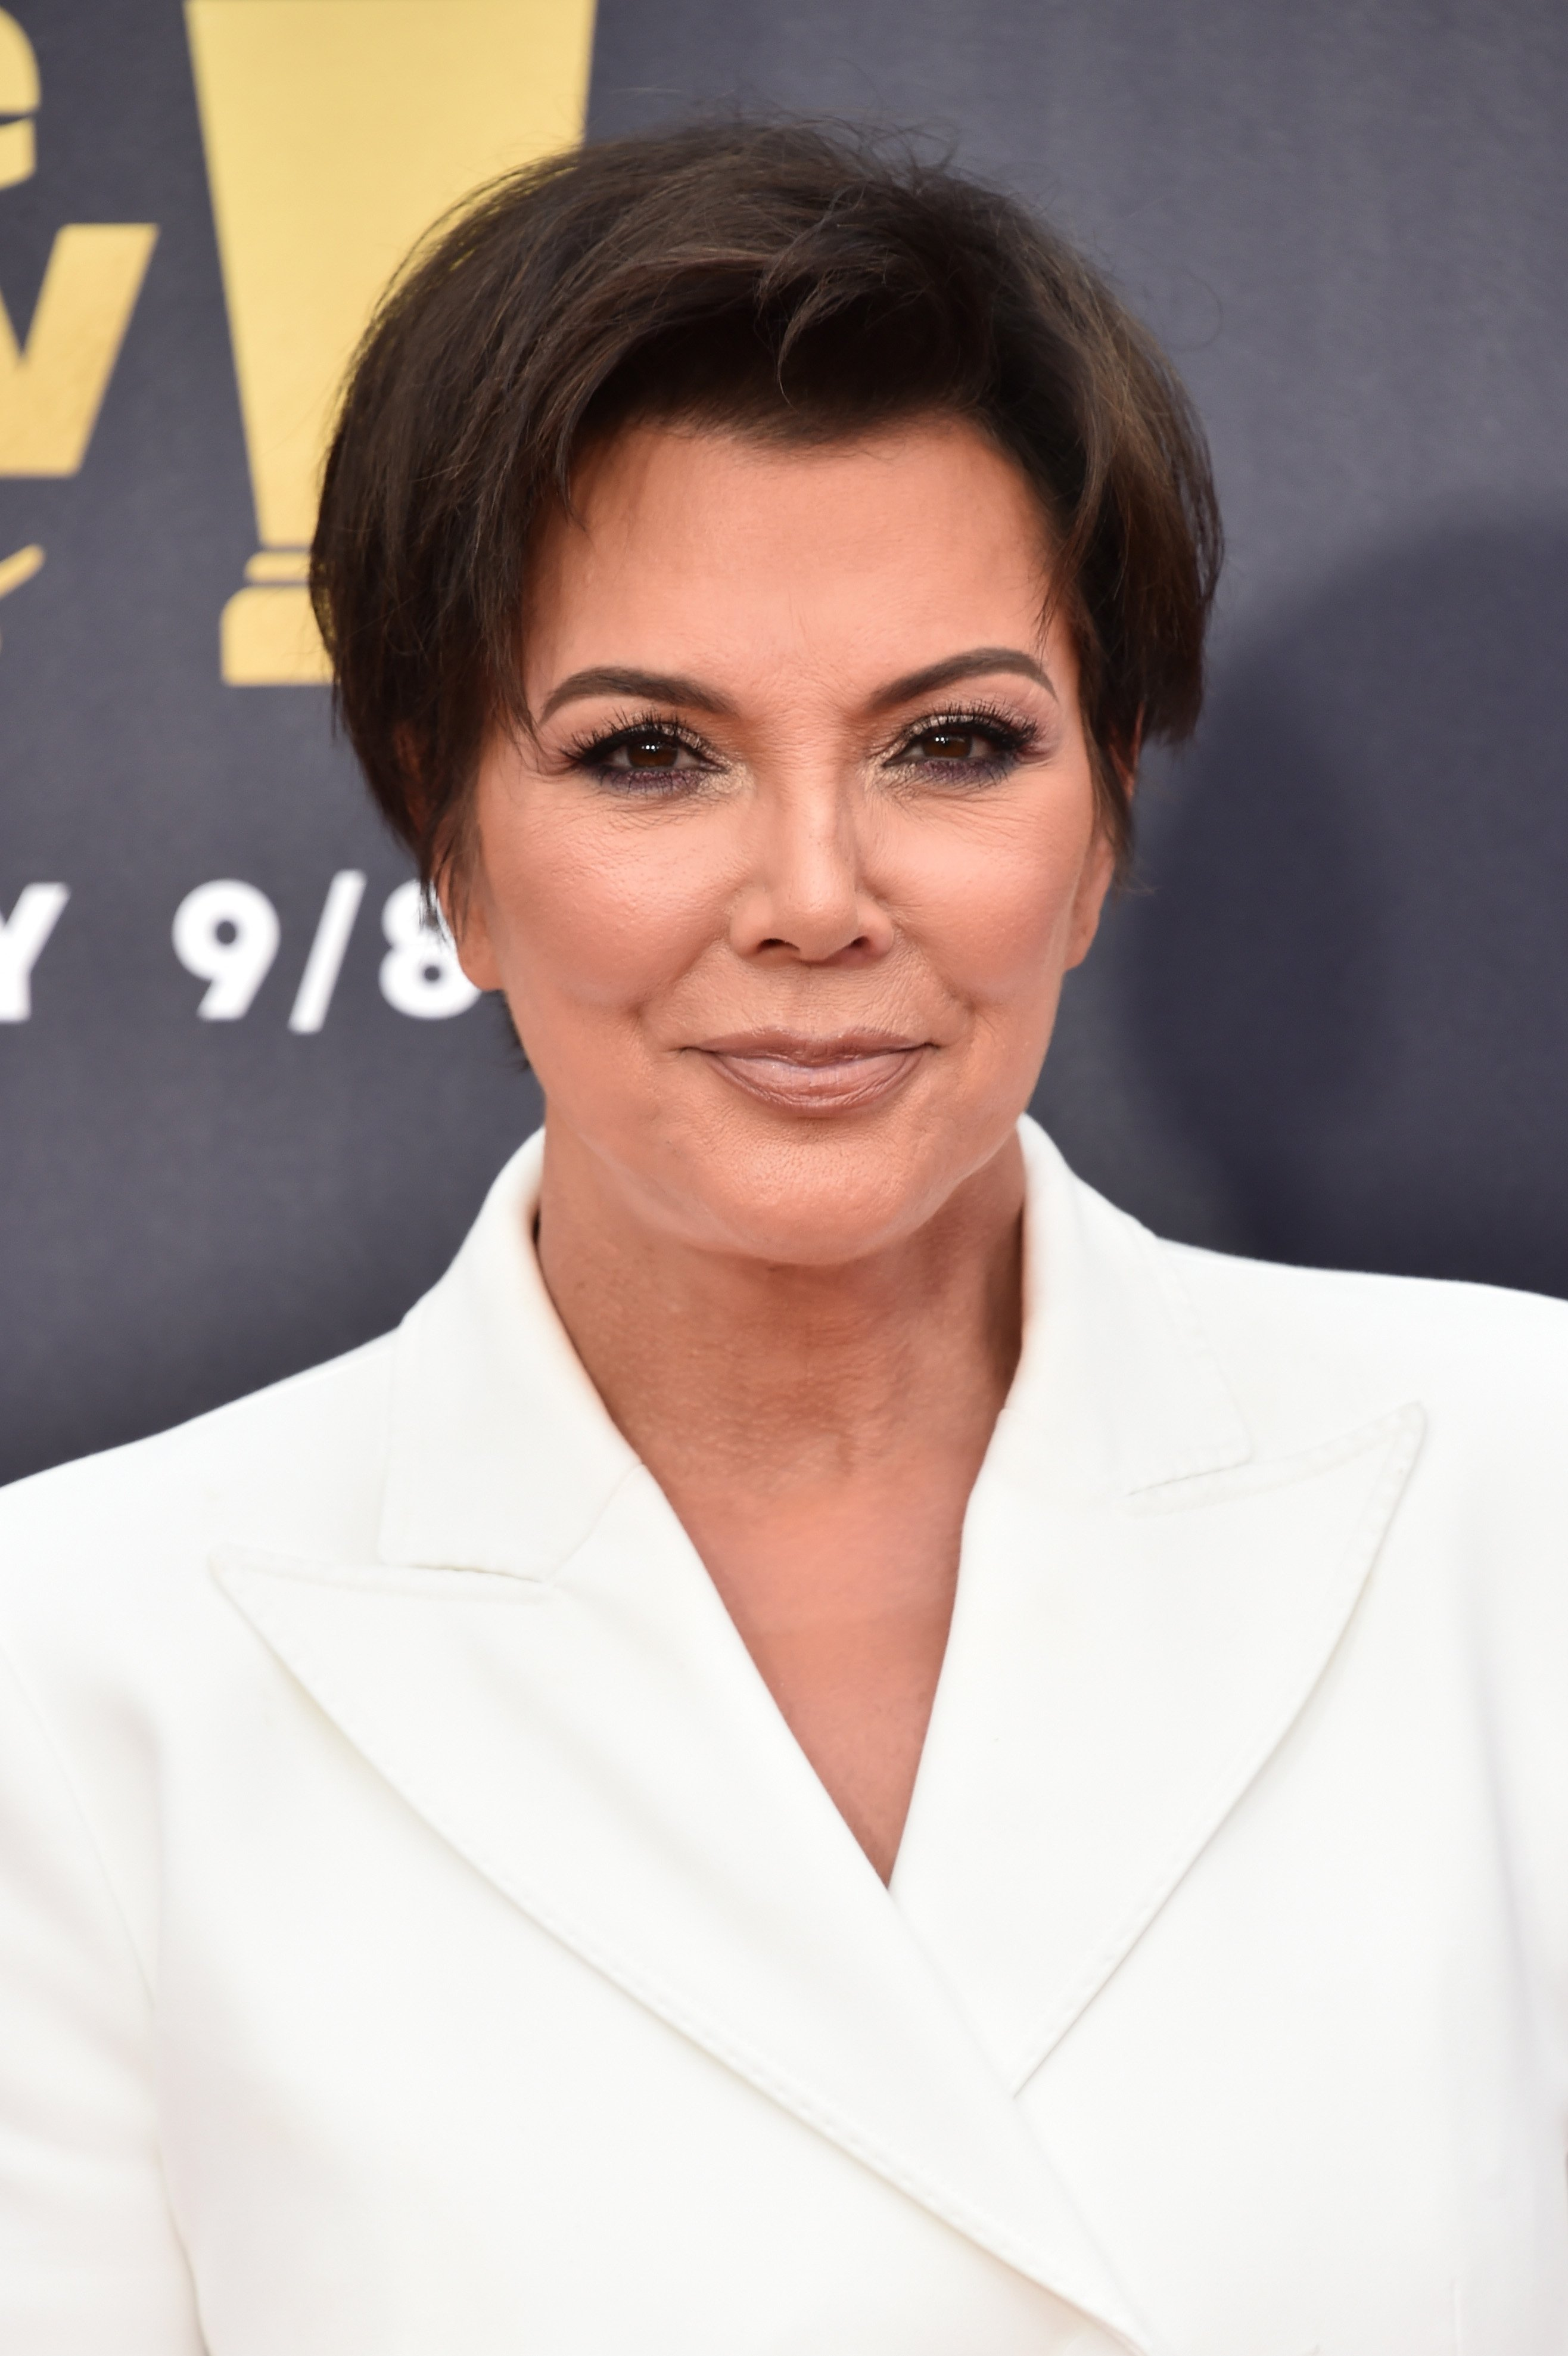 Kris Jenner at the 2018 MTV Movie and TV Awards. | Photo: Getty Images